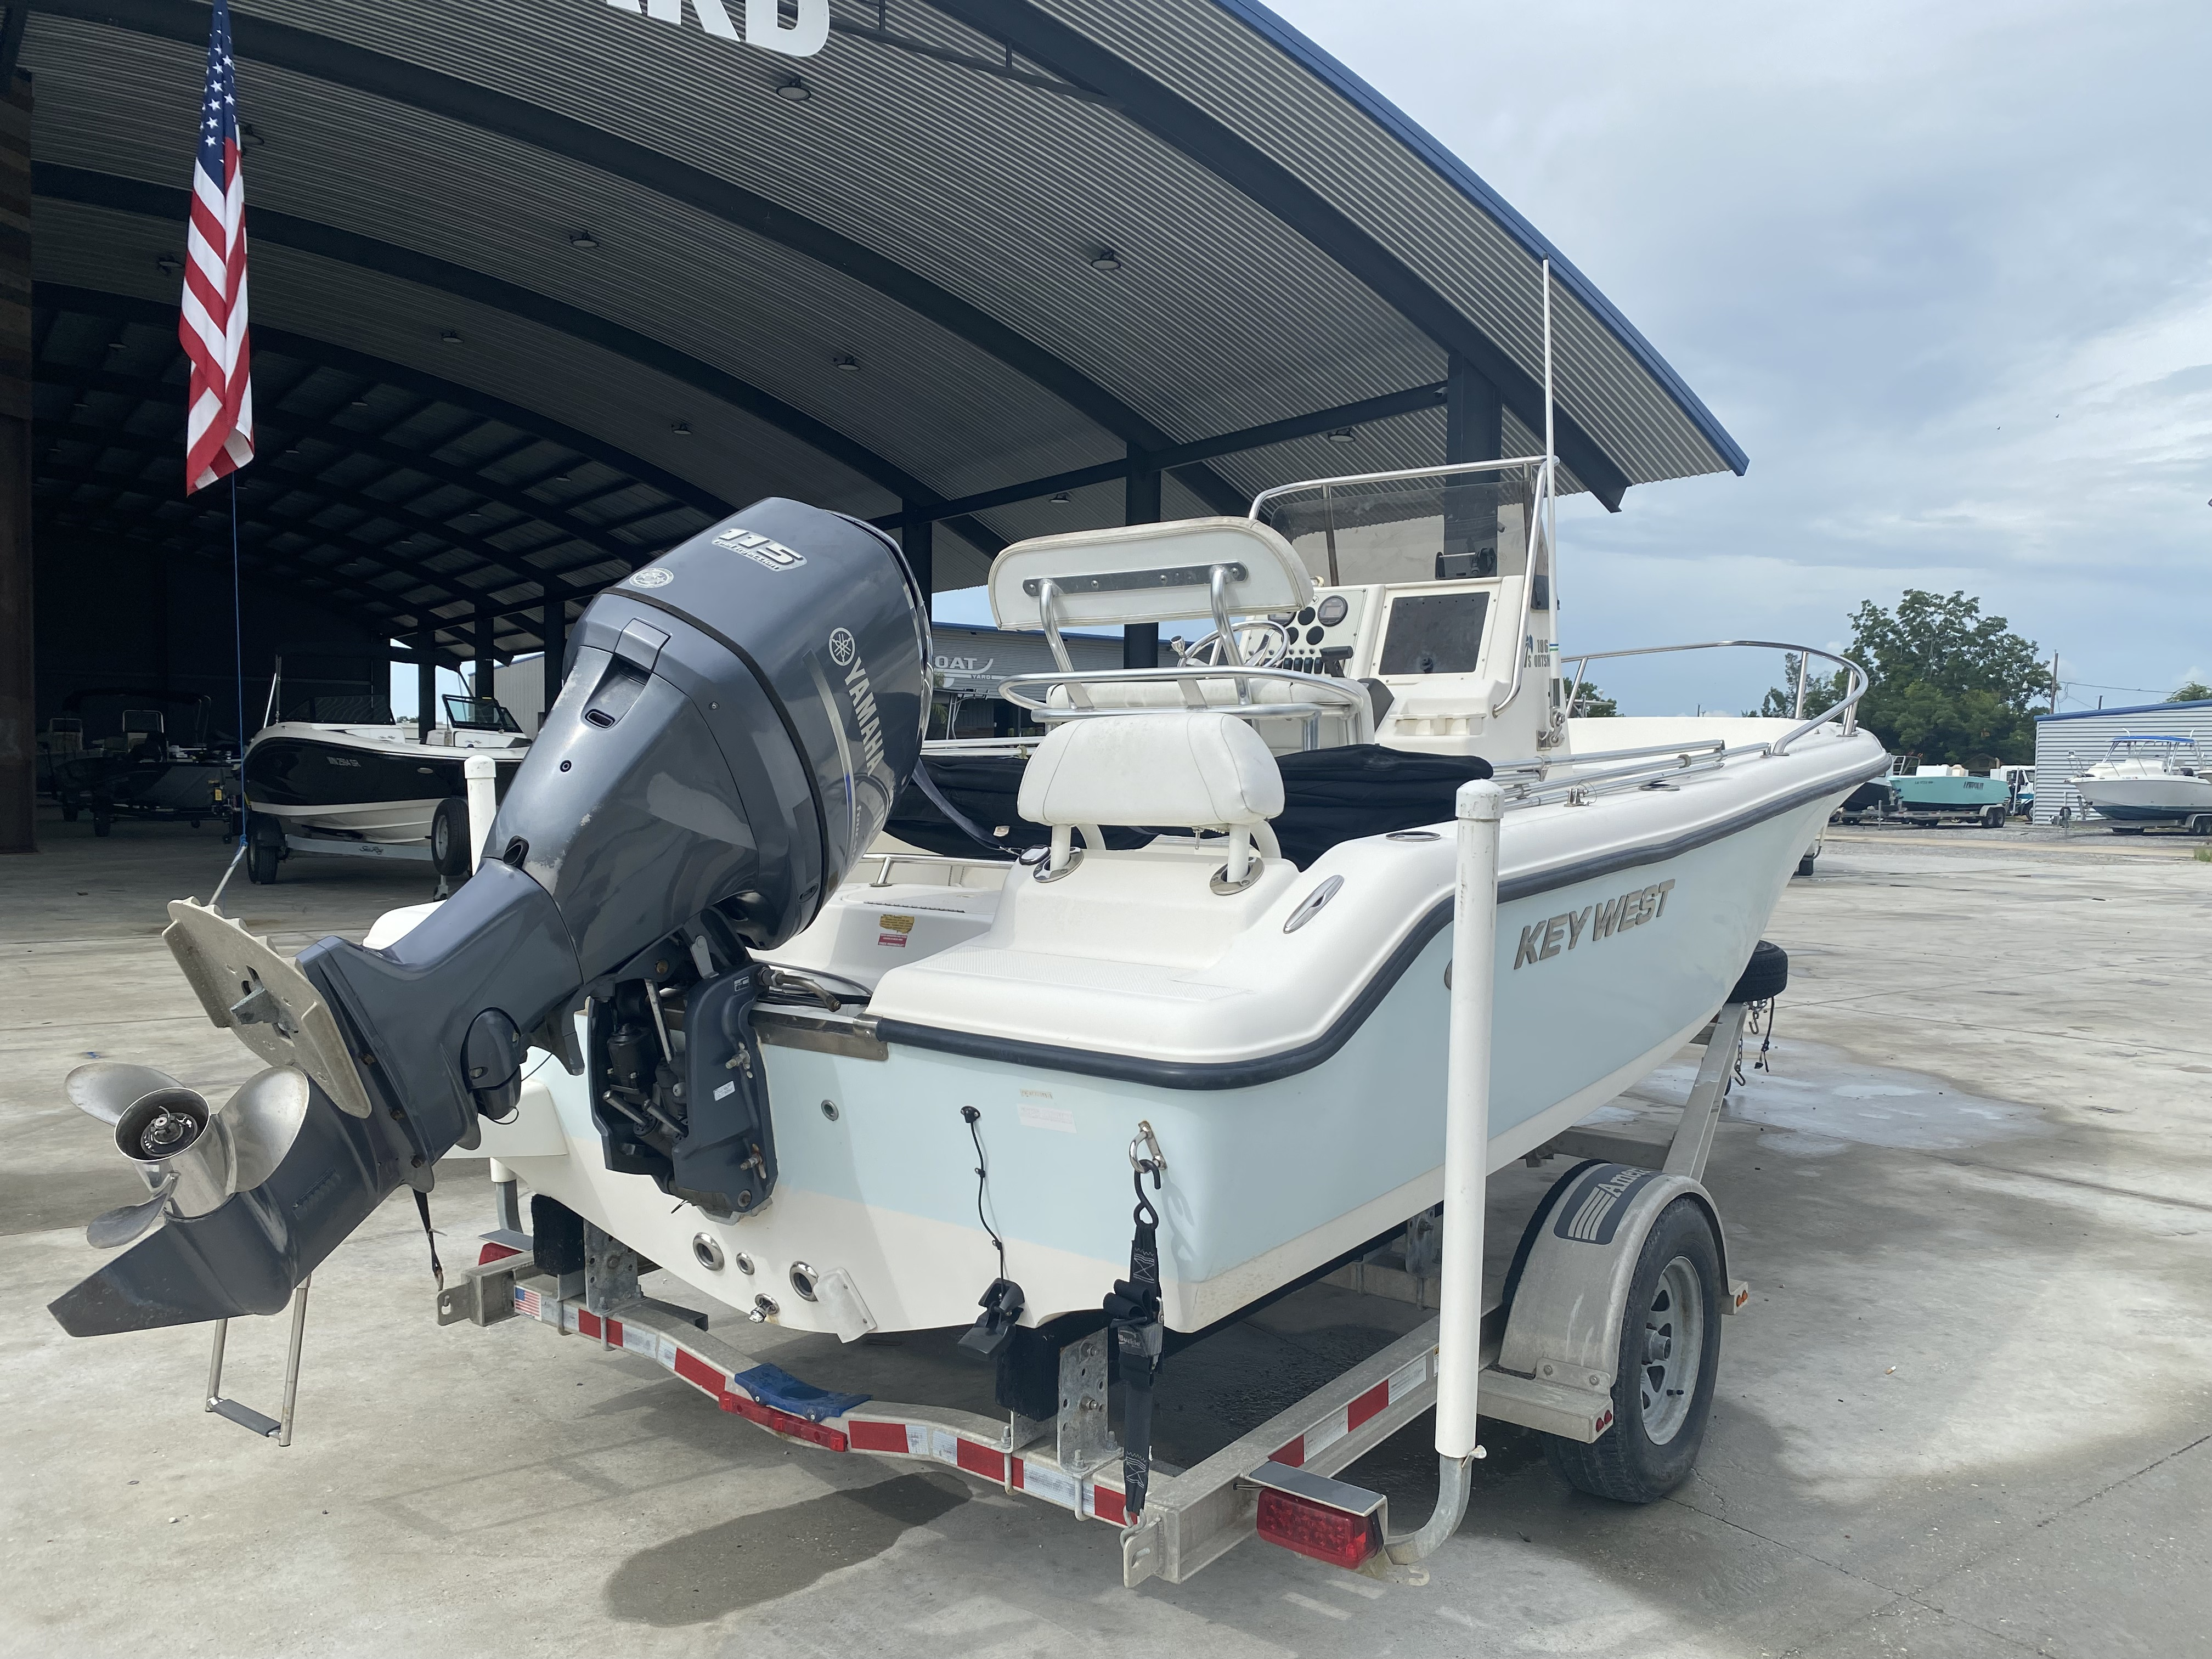 2013 Key West boat for sale, model of the boat is 186 Sportsman & Image # 11 of 12